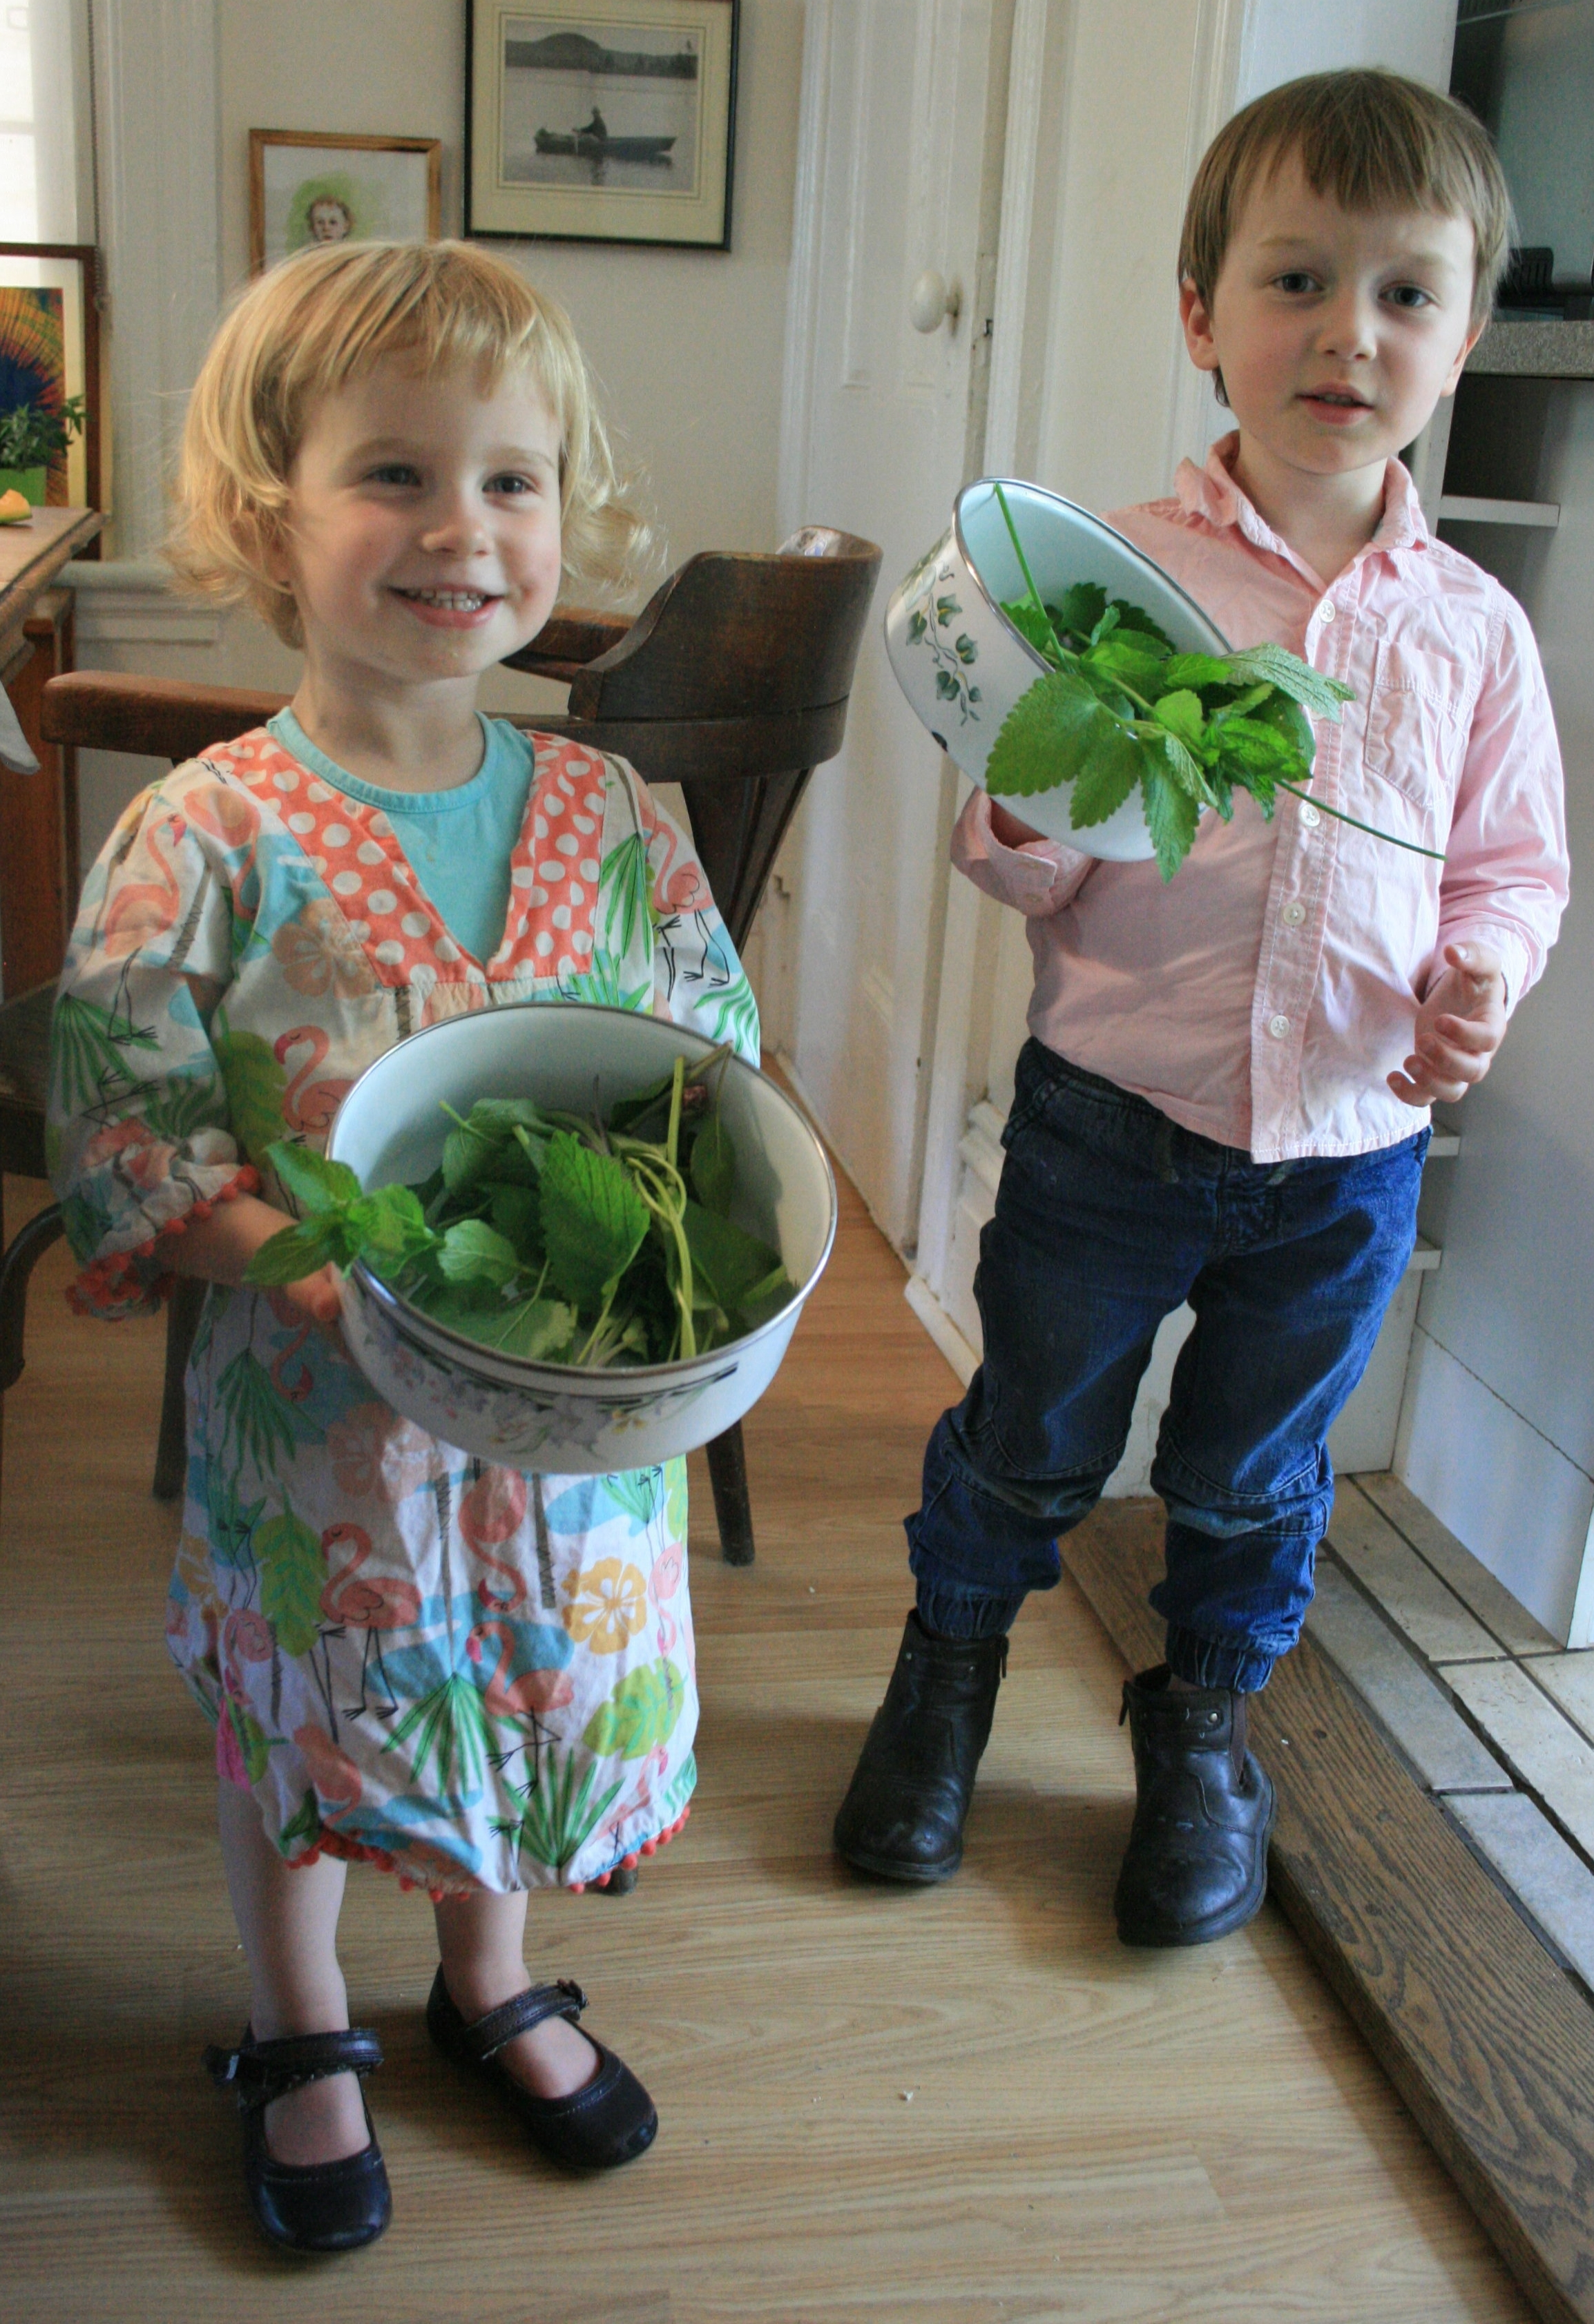 Last weekend, mint, lemon verbena, sage and sage flowers, and chive flowers all went in the bouquets. They chose their favourite party clothes for the afternoon too, of course.